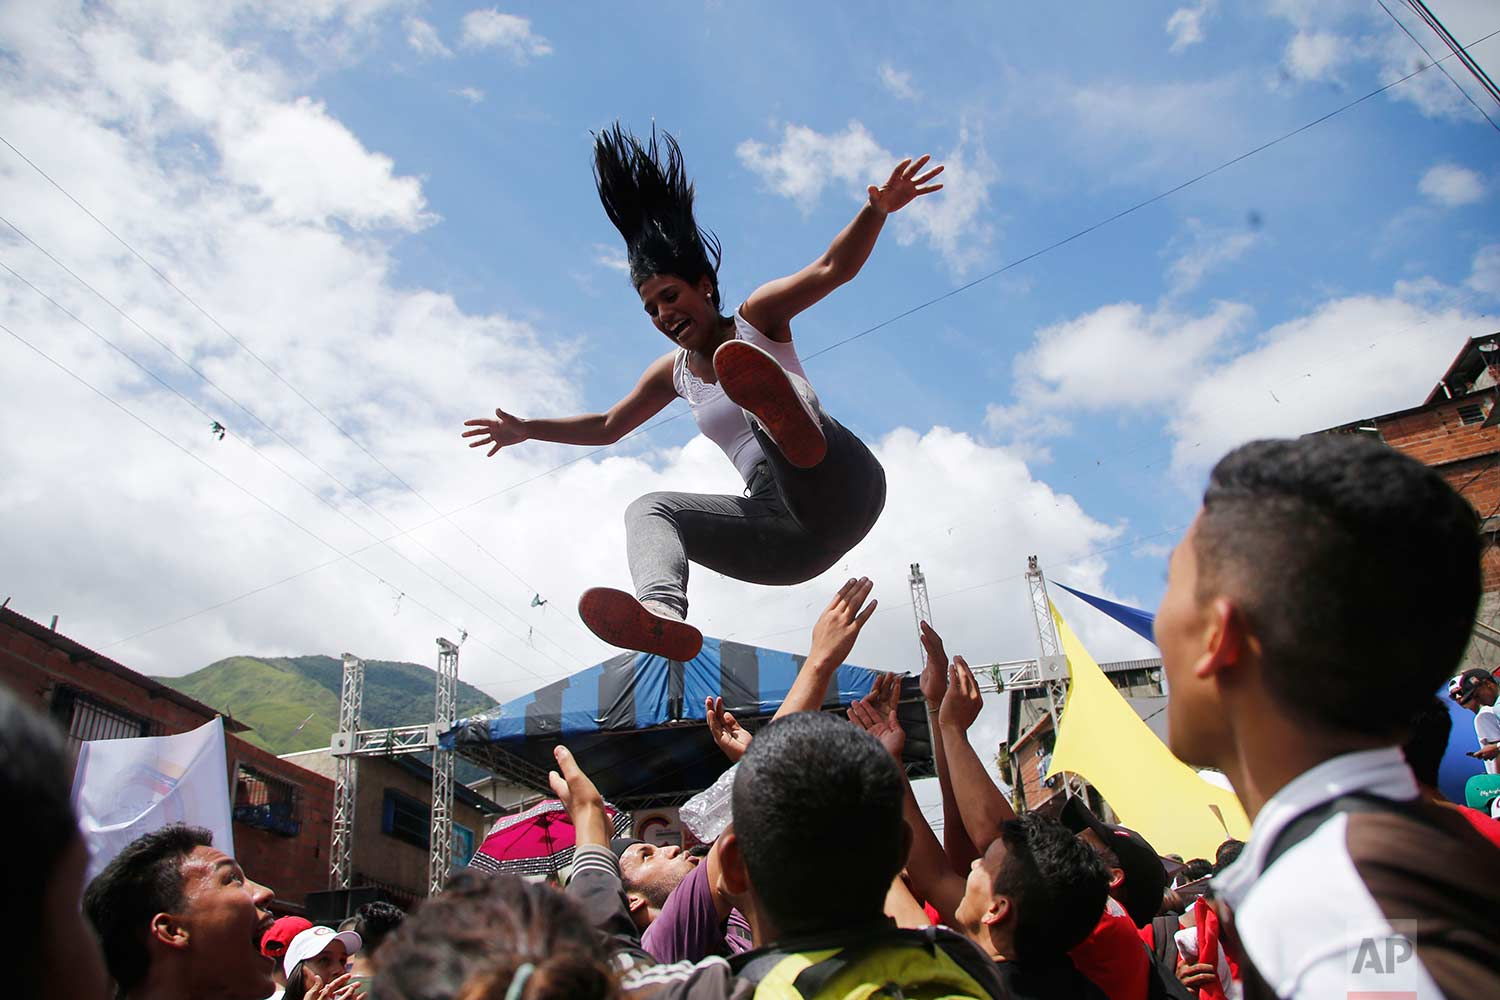 A woman is launched into the air during a pro-government candidates' rally in Caracas, Venezuela, Tuesday, July 25, 2017. (AP Photo/Ariana Cubillos)